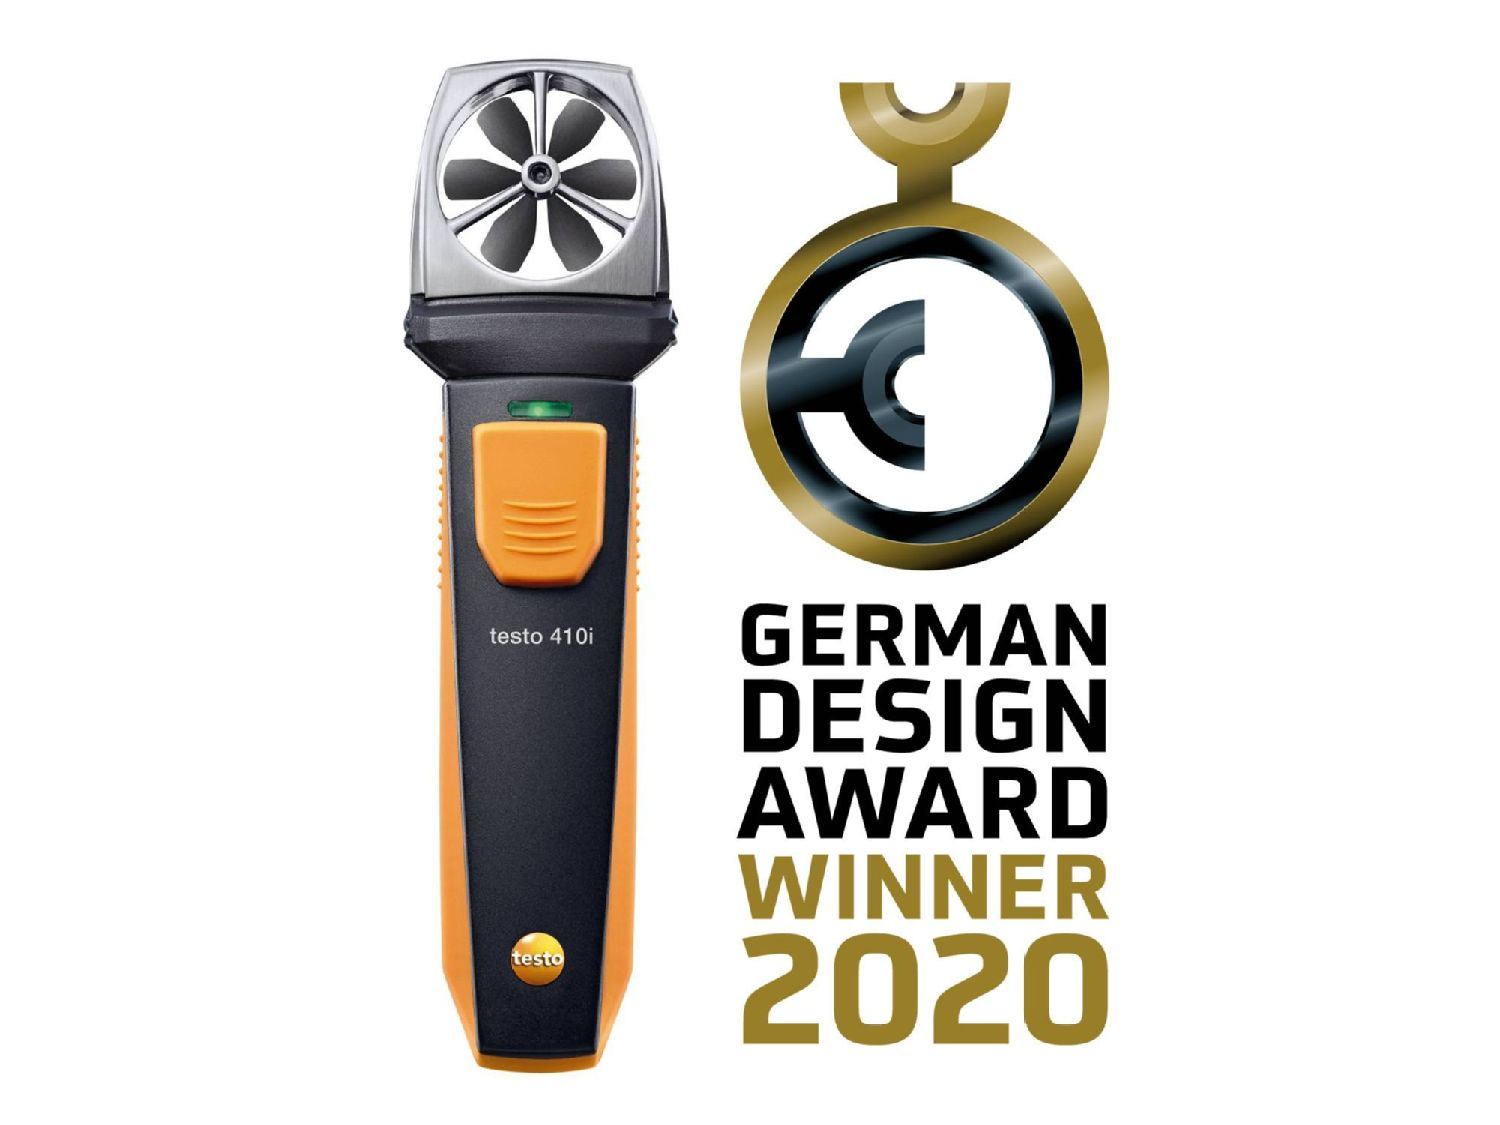 testo 410i German Design Award